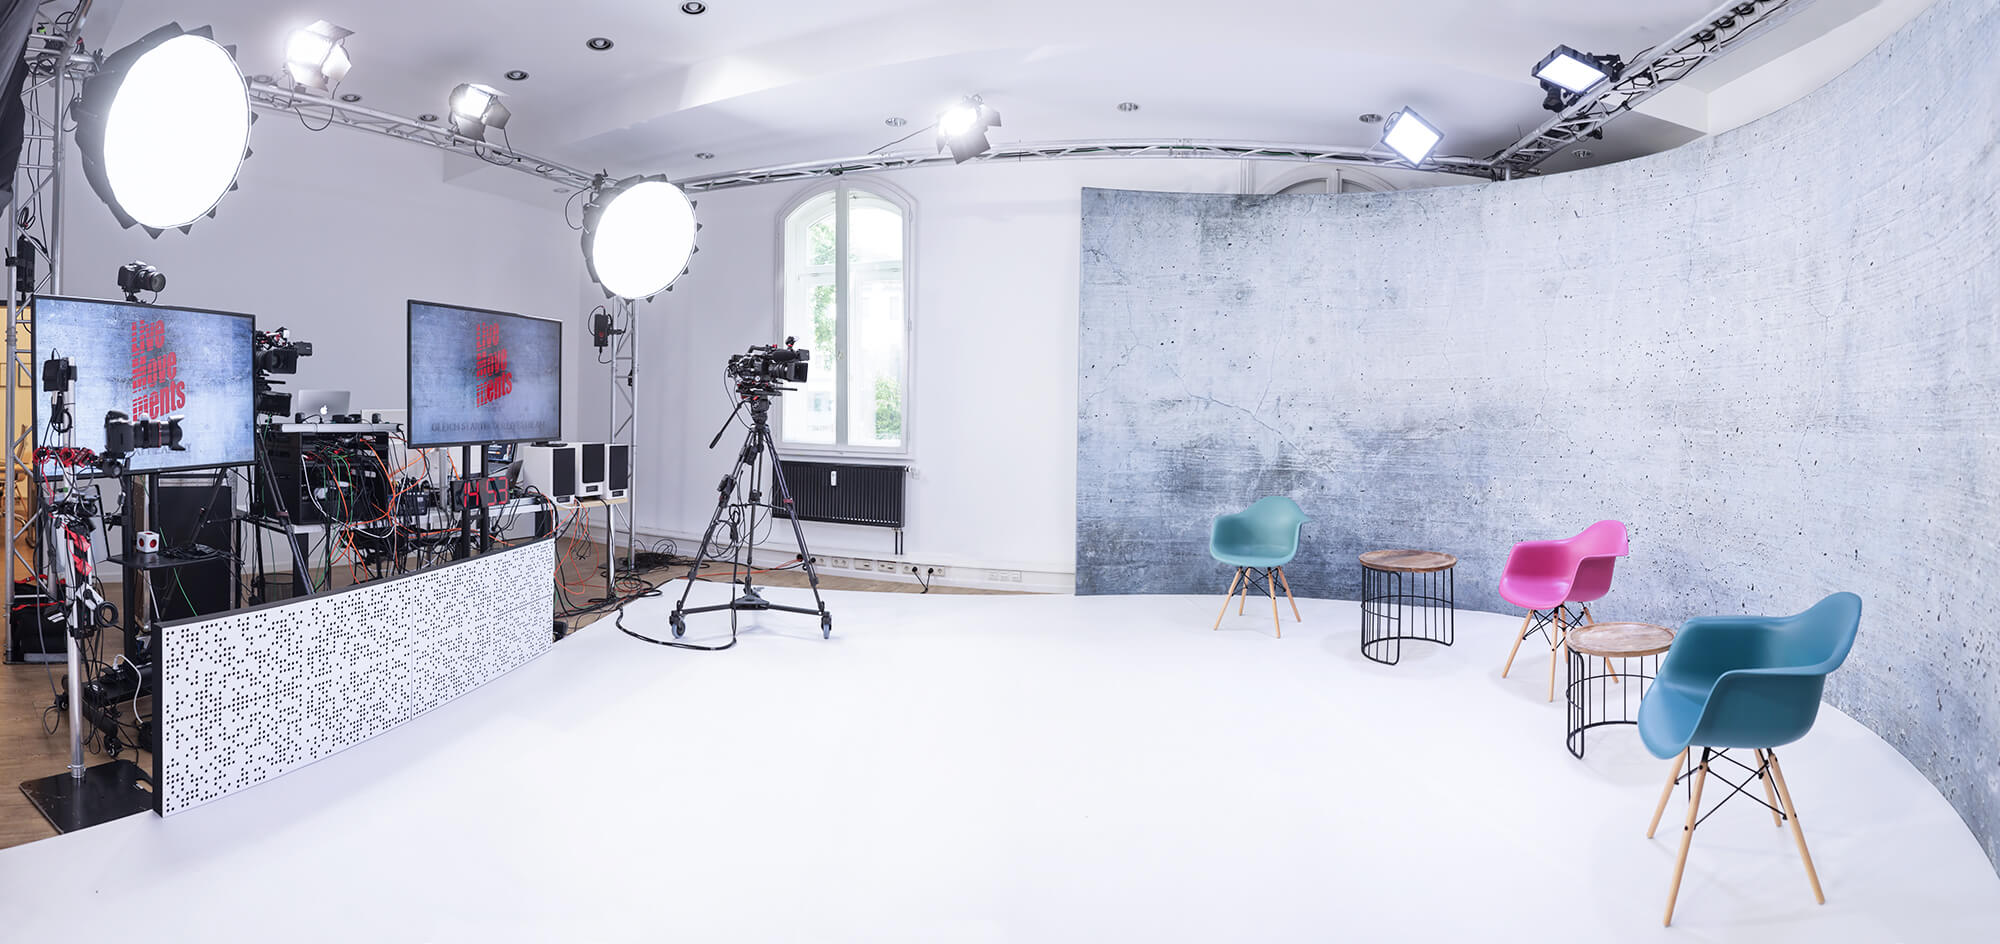 Livestreamstudio Hamburg